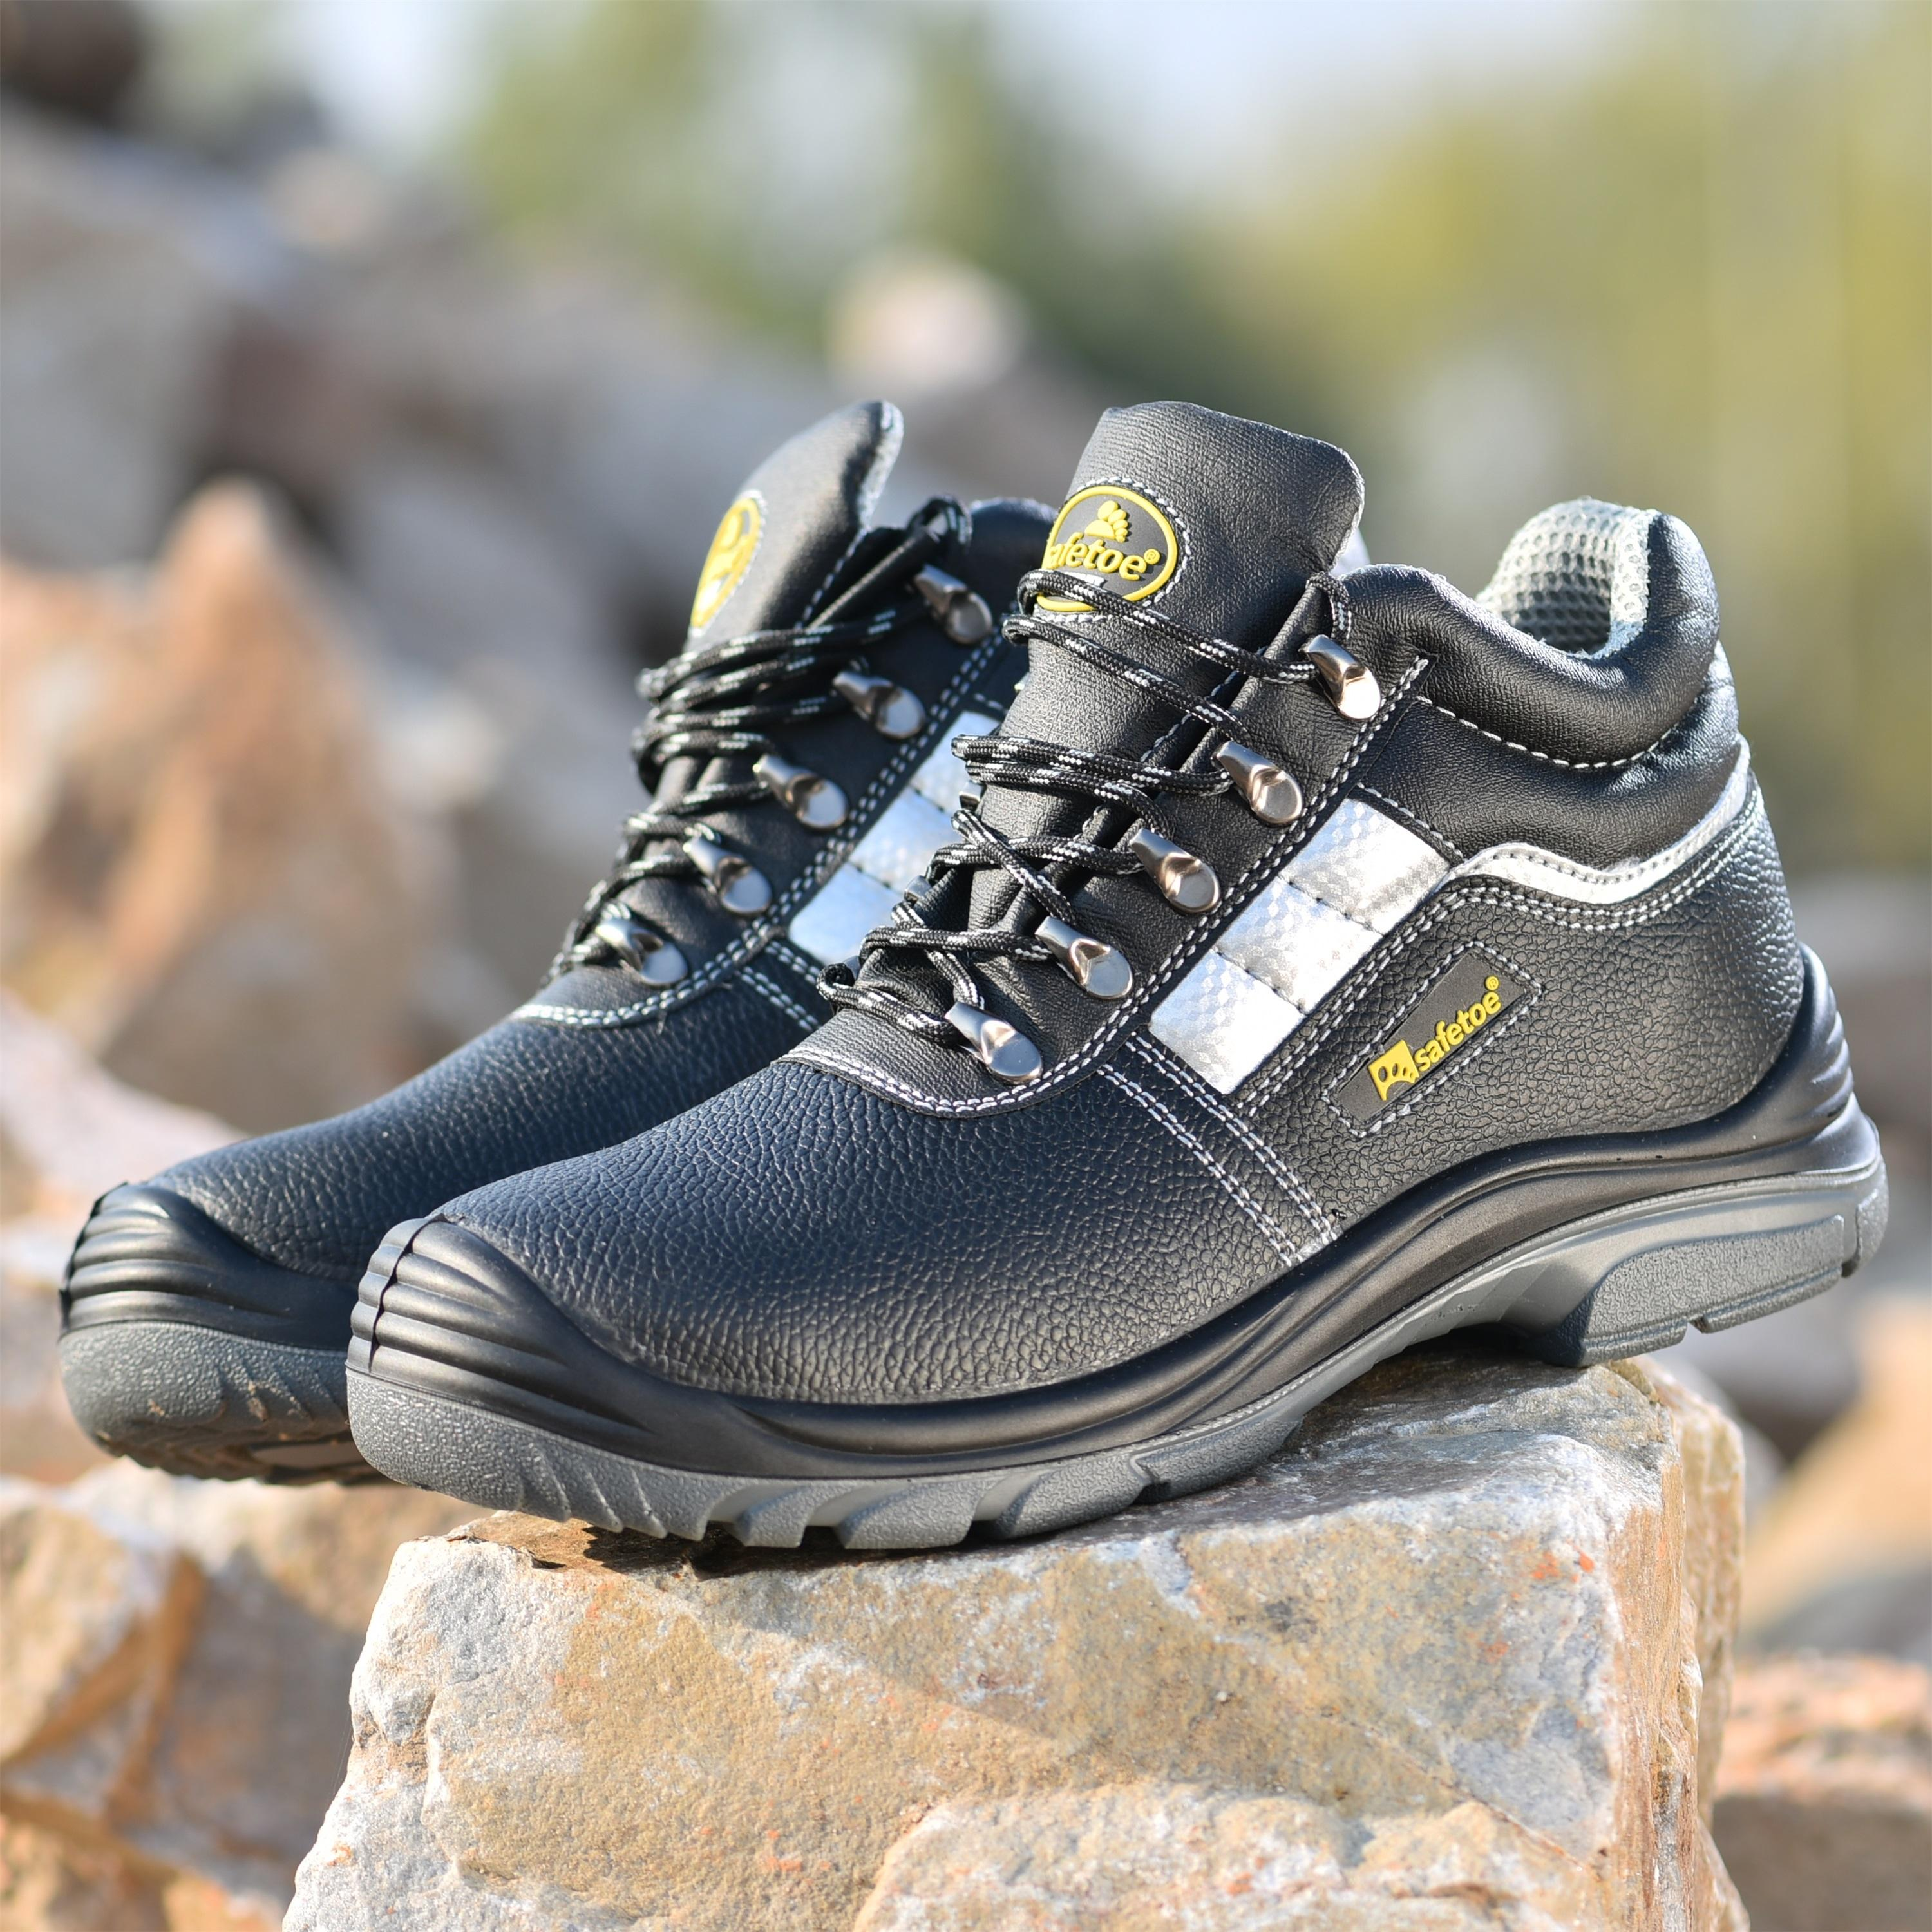 Mens Work Safety Shoes Indestructible Steel Toe Boots Hiking Sports Sneakers S3